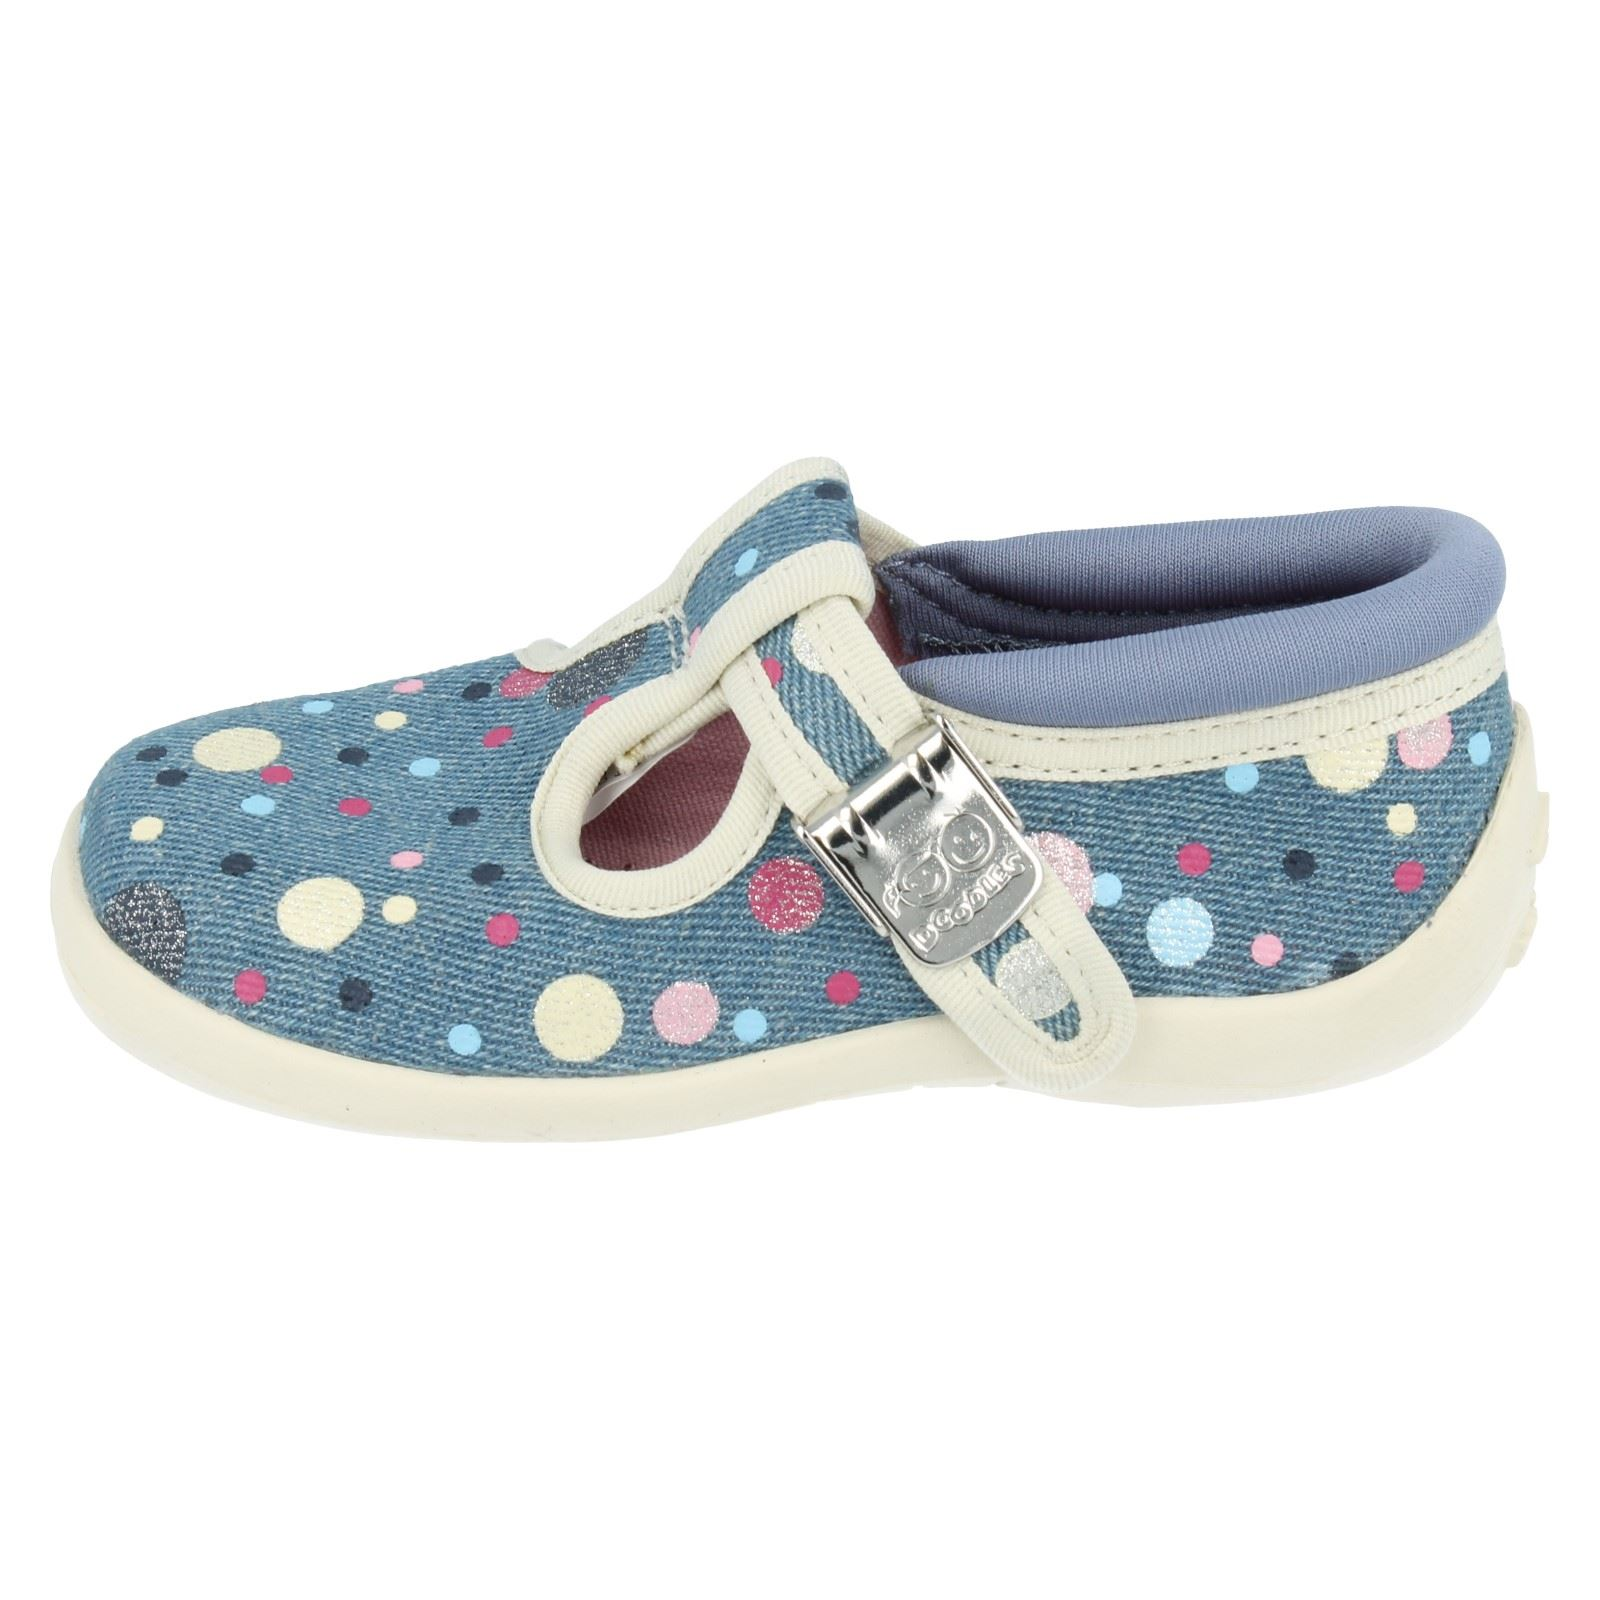 Girls Clarks Doodle Shoes The Style - Sophia May